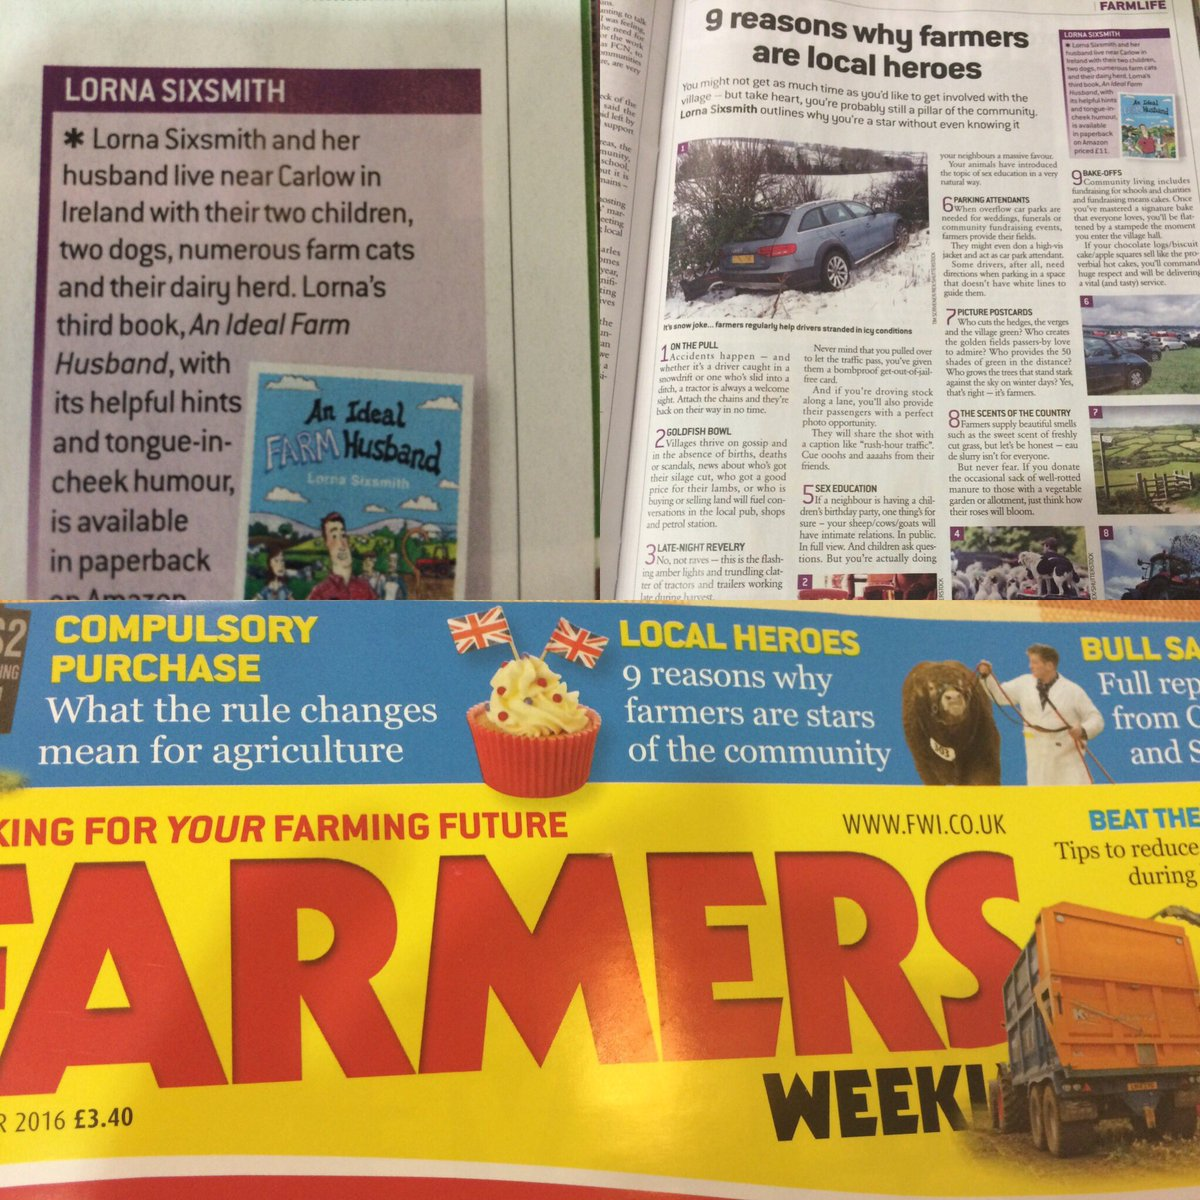 farmers-weekly-stars-of-community